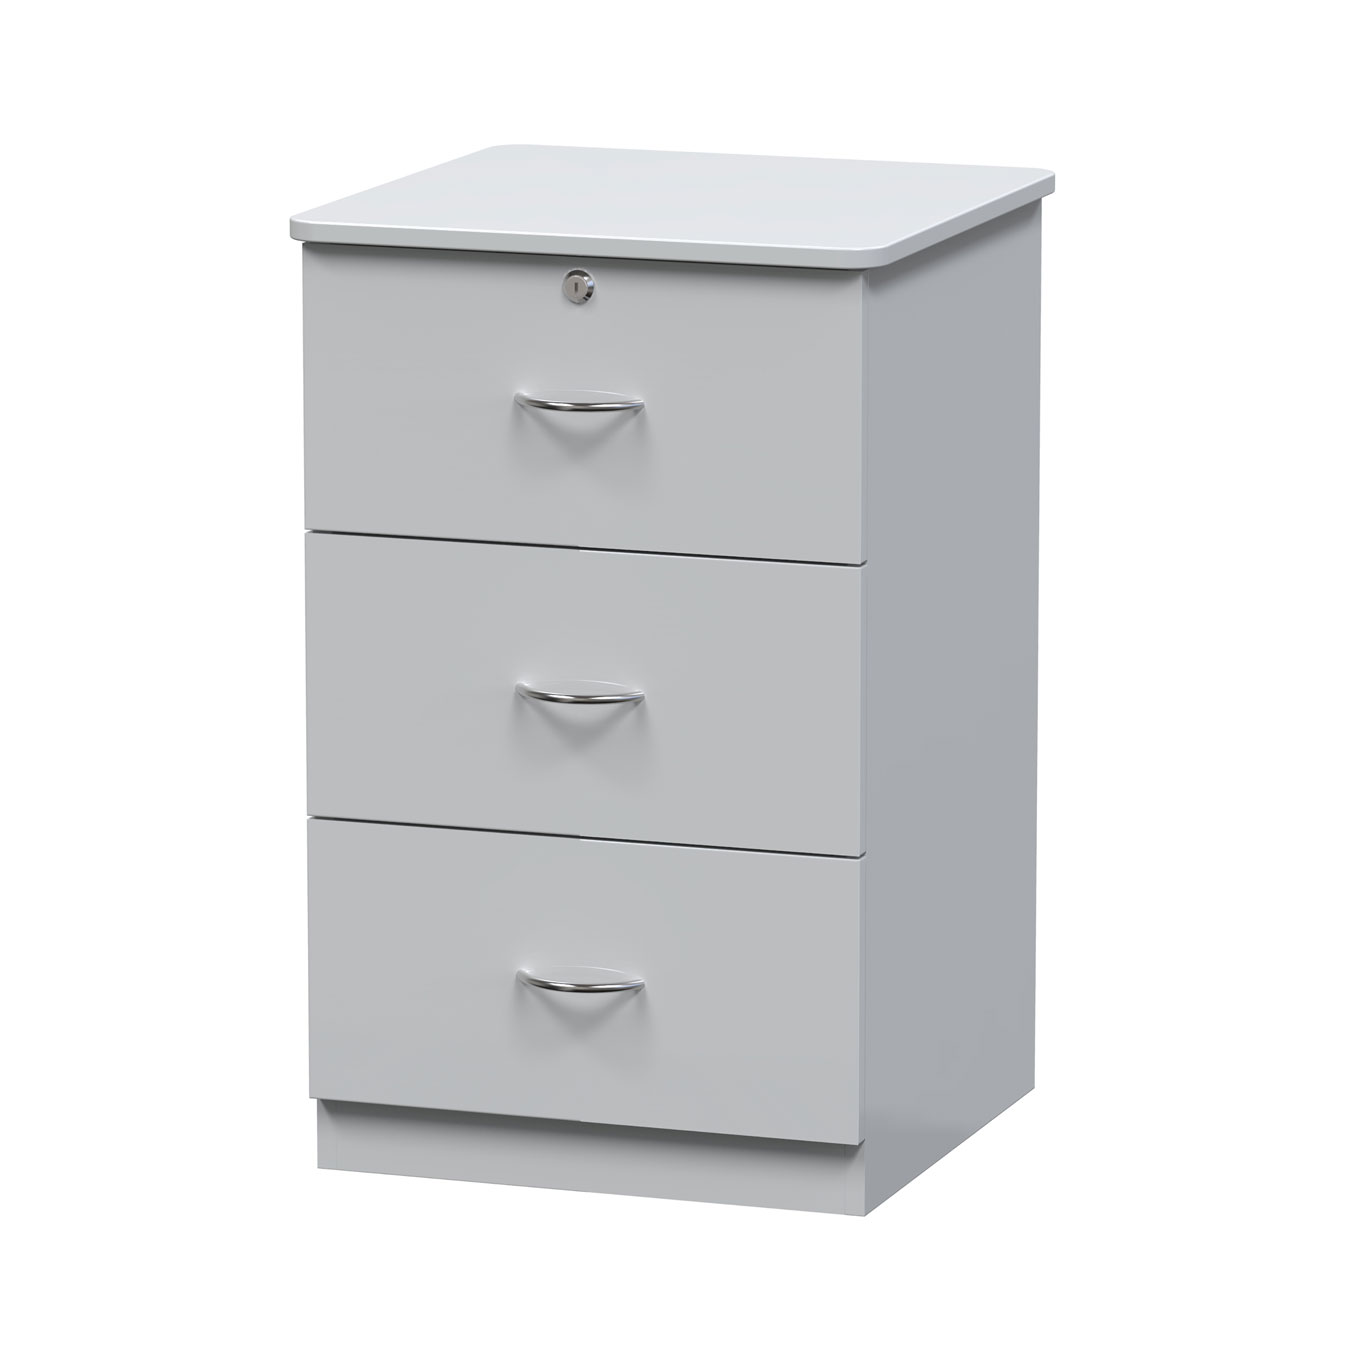 AXBL610-AW_Three-Drawer-Bedside-Locker_Ash-White_1